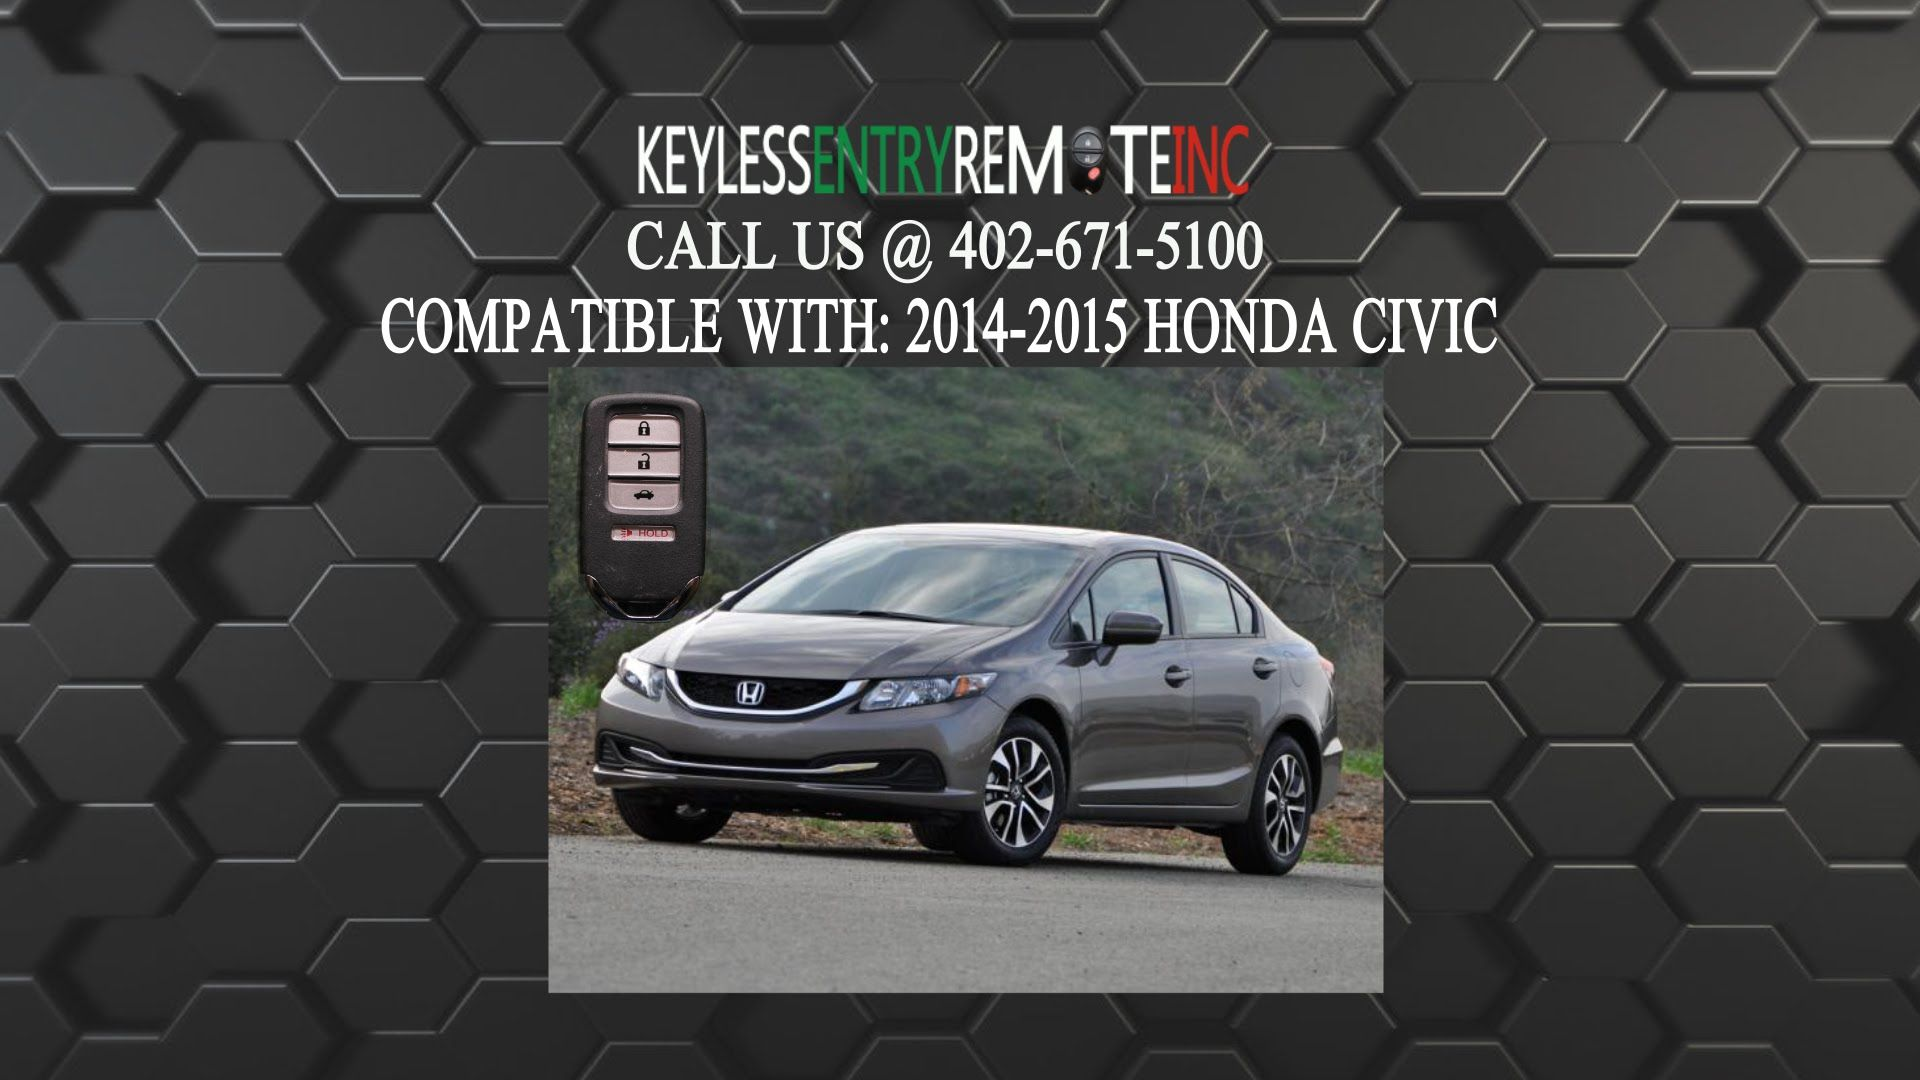 How To Replace Honda Civic Key Fob Battery 2014 2015